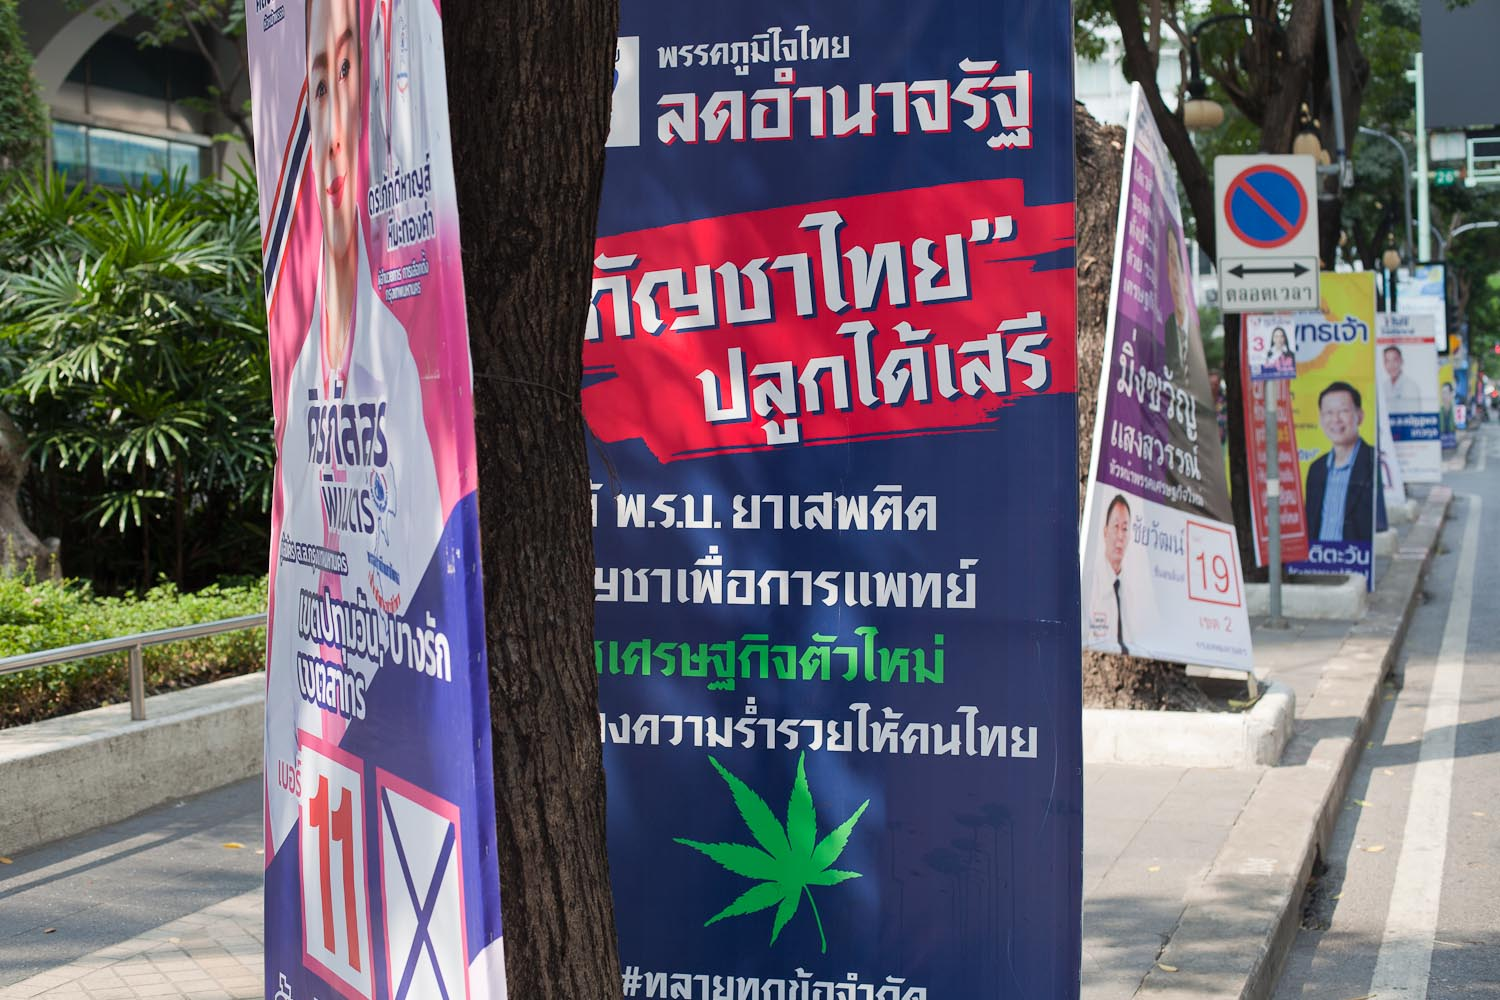 "Phak Phumjai Thai (Proud to Be Thai Party): ""Limit the state's power. Free cultivation of Thai cannabis. Correct the Narcotics Act. Cannabis for medical use. A new economy. Generate wealth for Thai people.""  To the left: Phak Chart Thai Phattana (Thai Nation Development Party)"